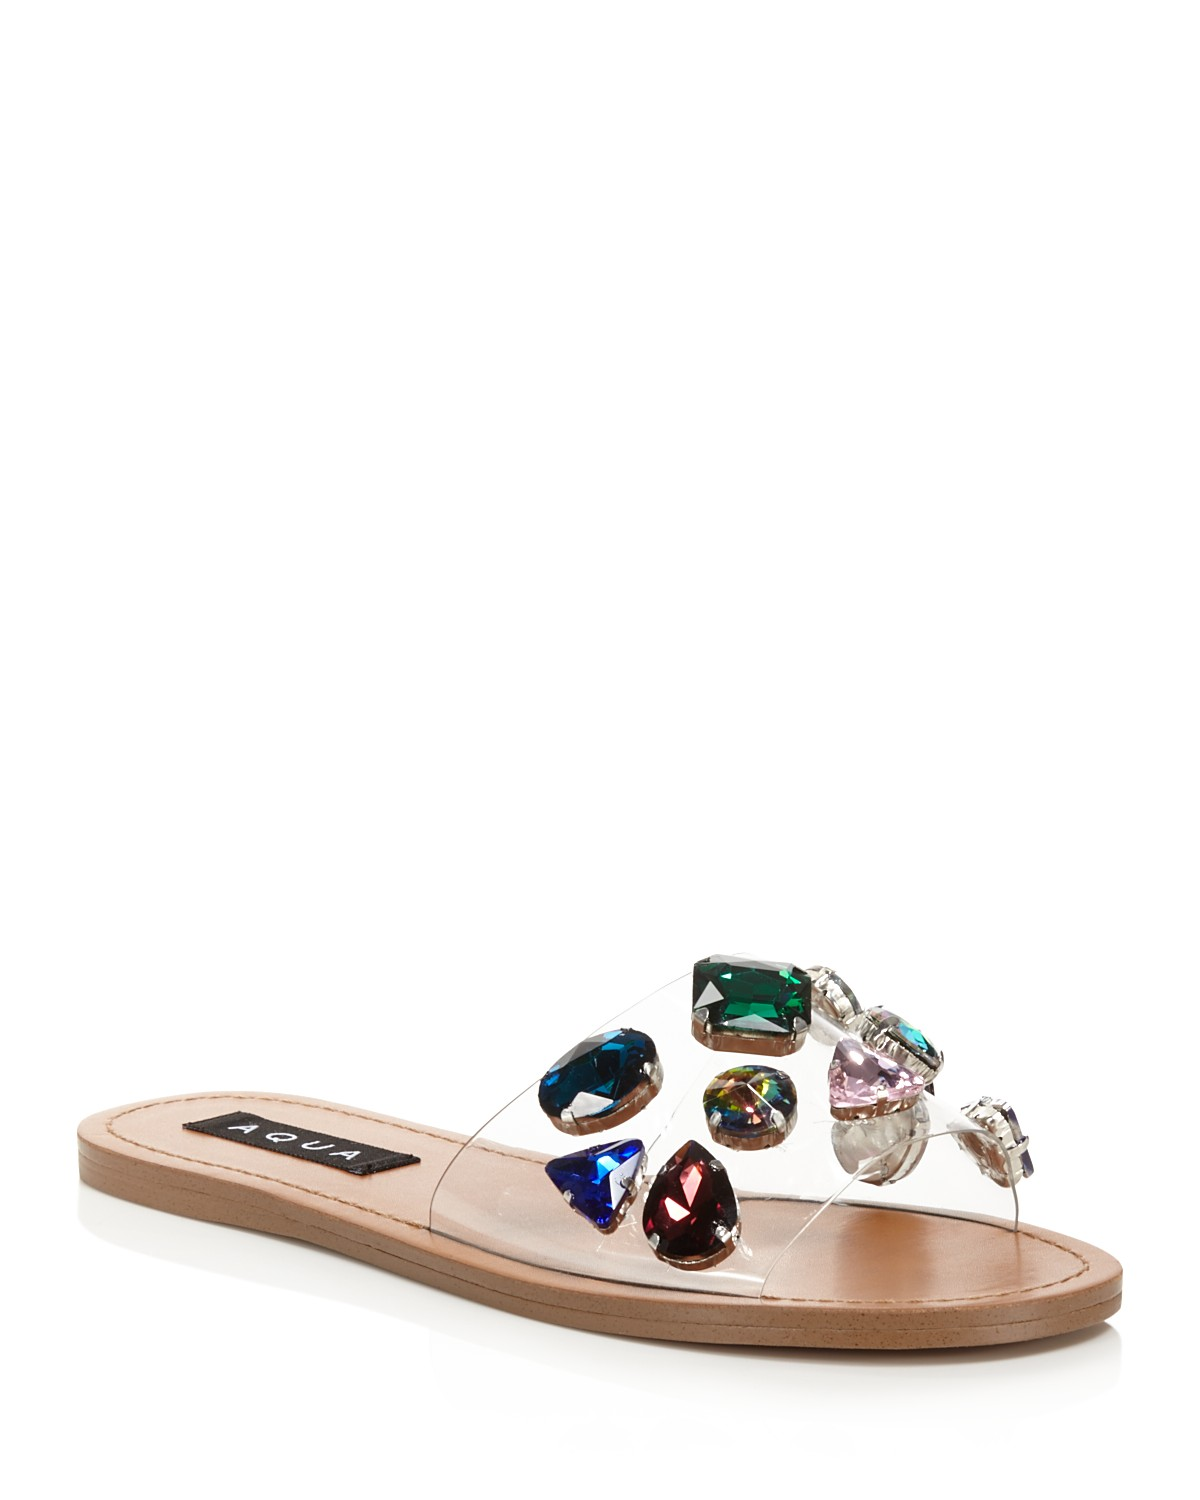 Aqua Women's Trinket Embellished Slide Sandals - 100% Exclusive J5pQSr